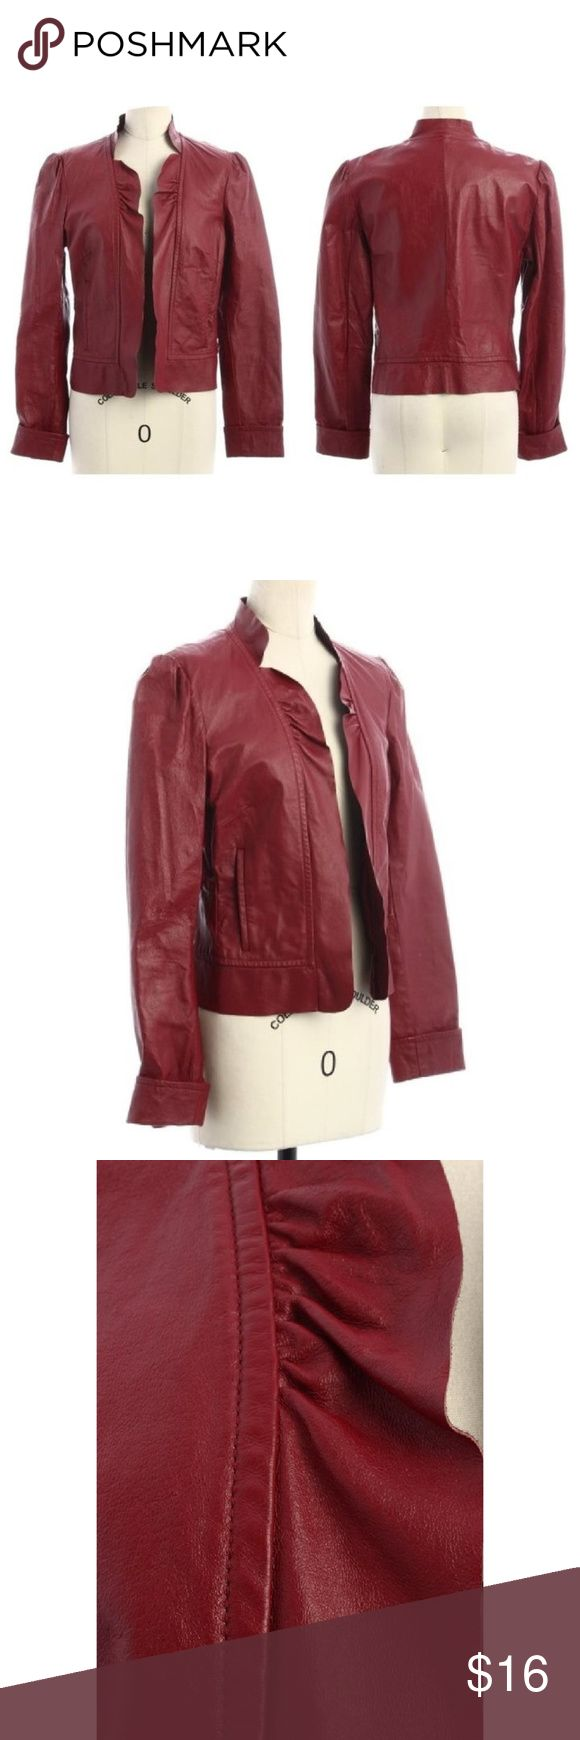 """Spiegel Ruffle Trim Open Front Red Leather Jacket Good Used Condition Leather shell cleaned (leather cream) and conditioned (mink oil). Brand name and material content tags have been removed. Review all photos carefully as they are considered part of the Item Description.  Material Content: 100% Leather  Approximate measurements 17"""" chest (straight across front, armpit to armpit); 33"""" from nape of neck, over shoulder, down sleeve to end; 19.5"""" length (from nape of neck to hem) Spiegel…"""